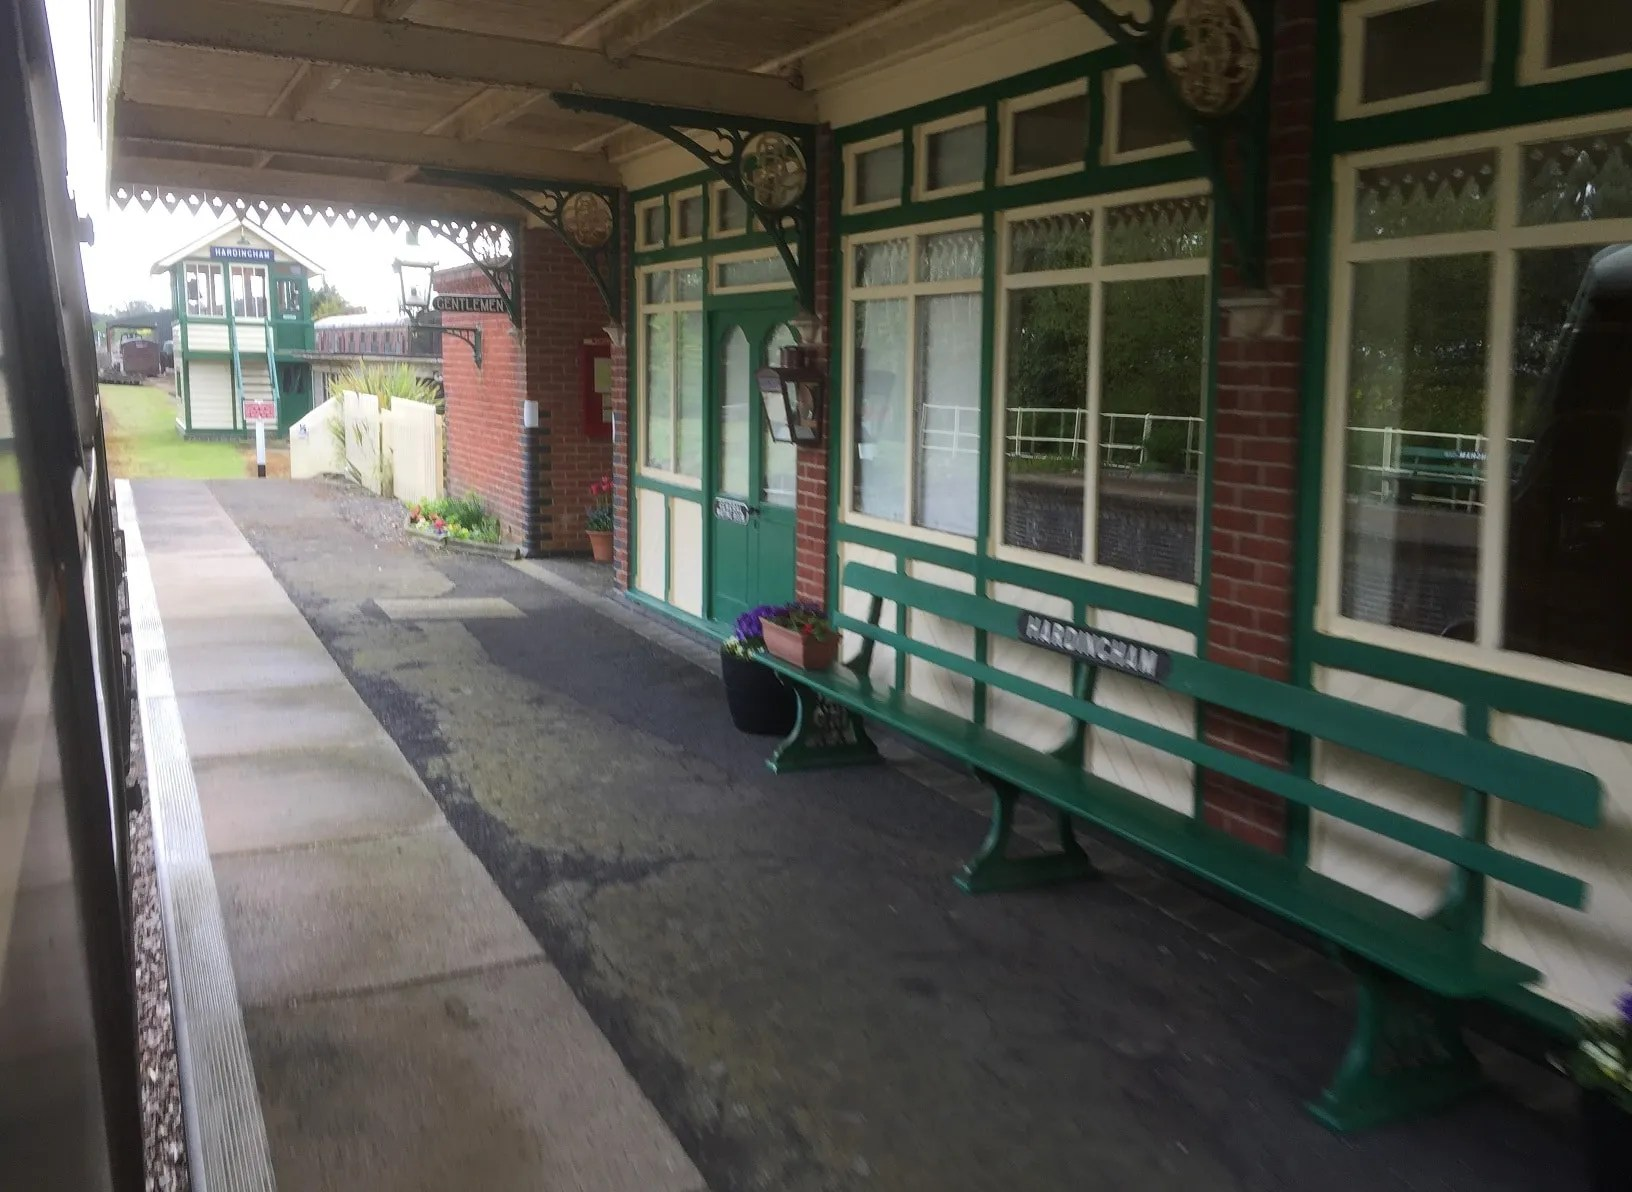 The privately owned Hardingham Station